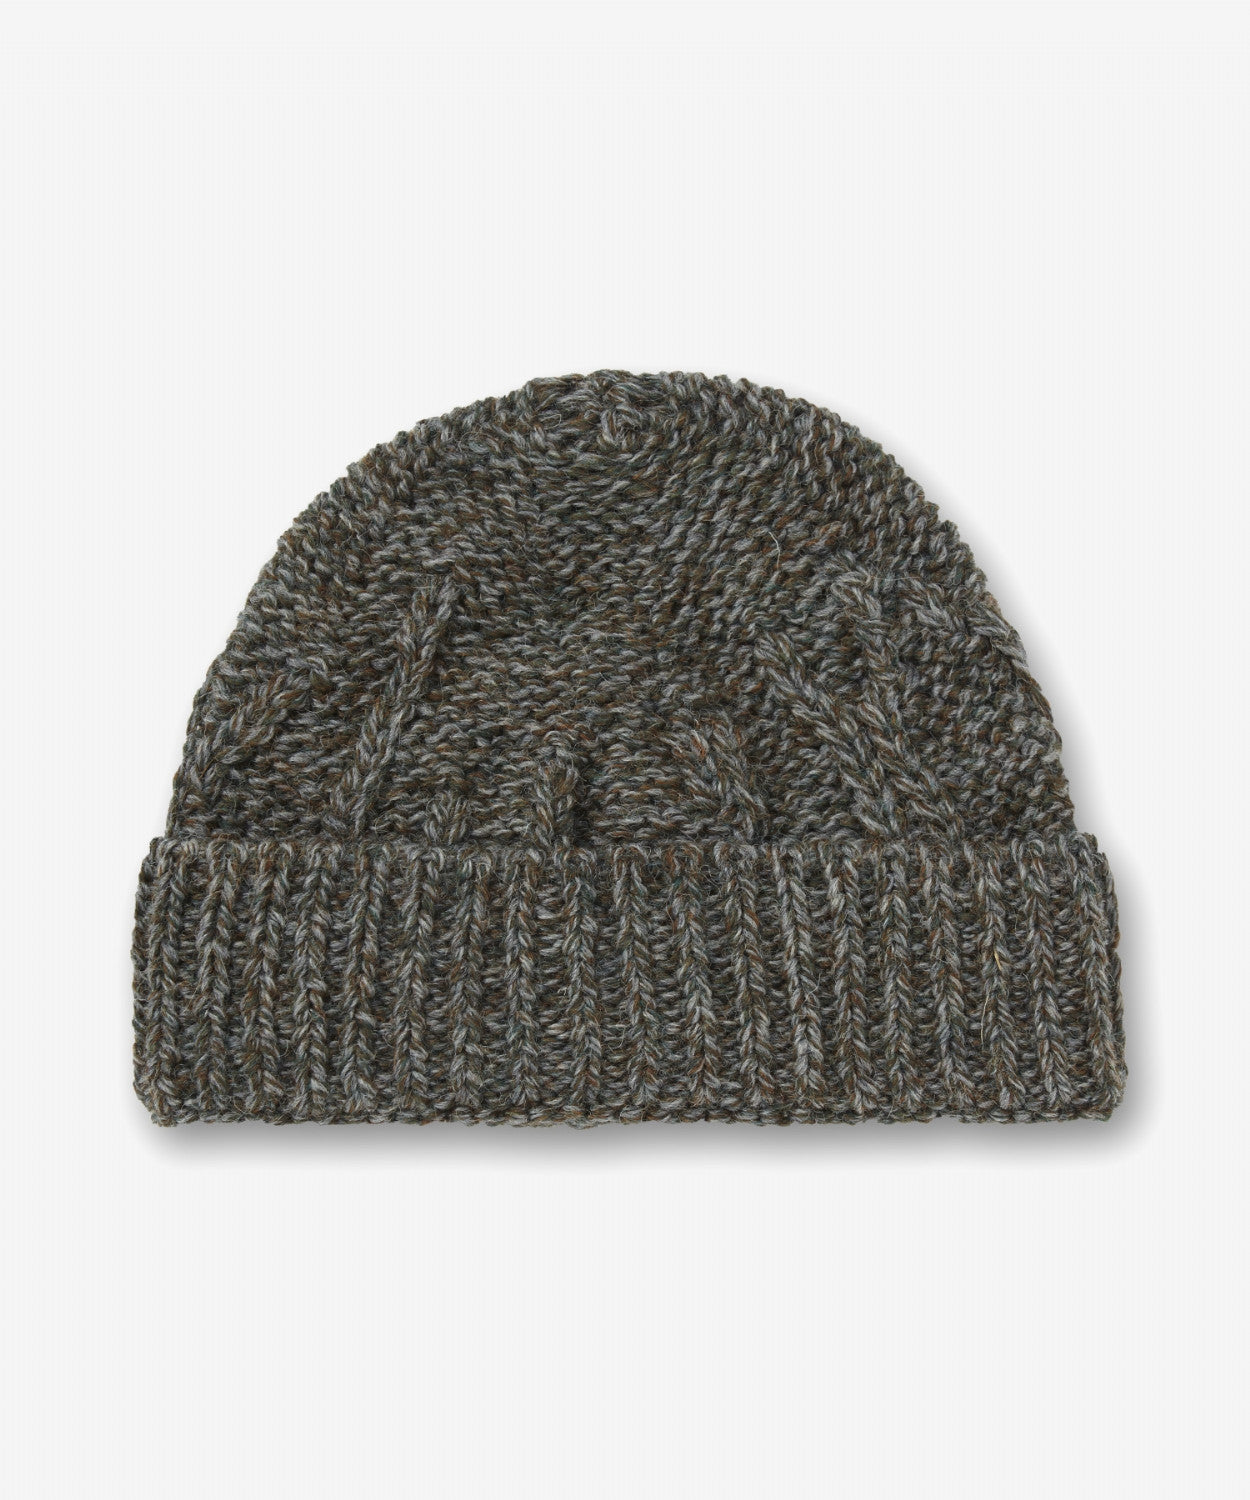 DK OLIVE TEXTURED KNIT BEANIE HAT [MADE IN UK]